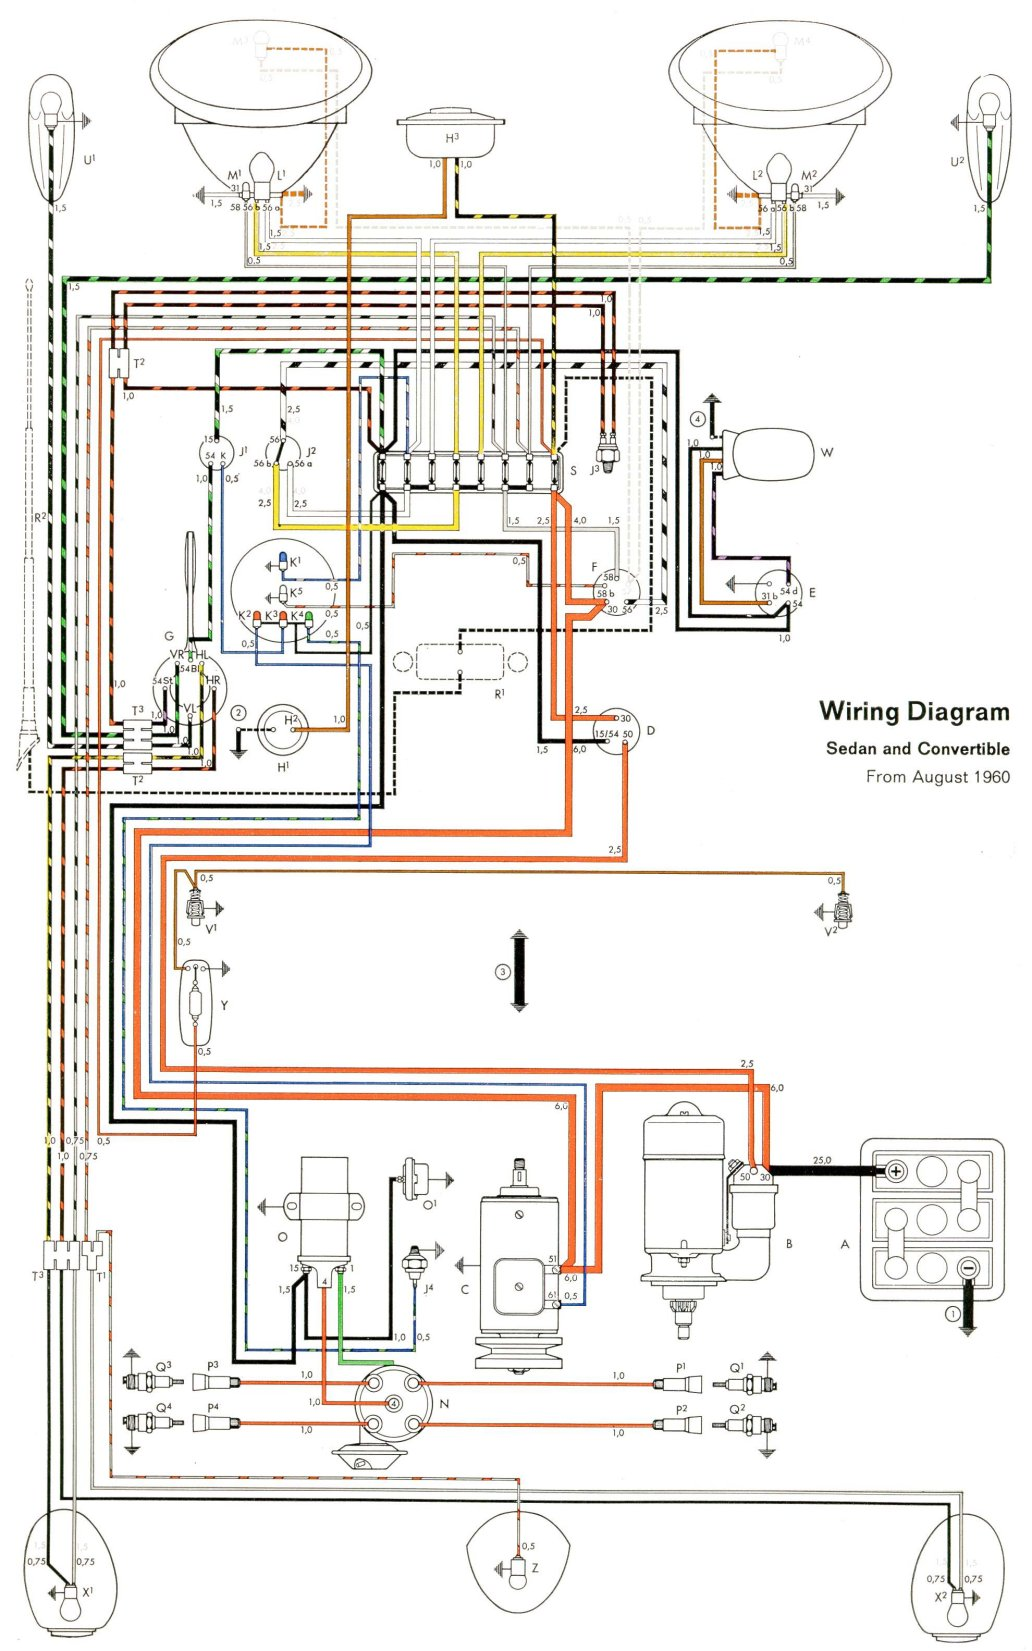 thesamba com type 1 wiring diagrams rh thesamba com 1971 vw beetle electrical diagram 1971 vw super beetle wiring diagram